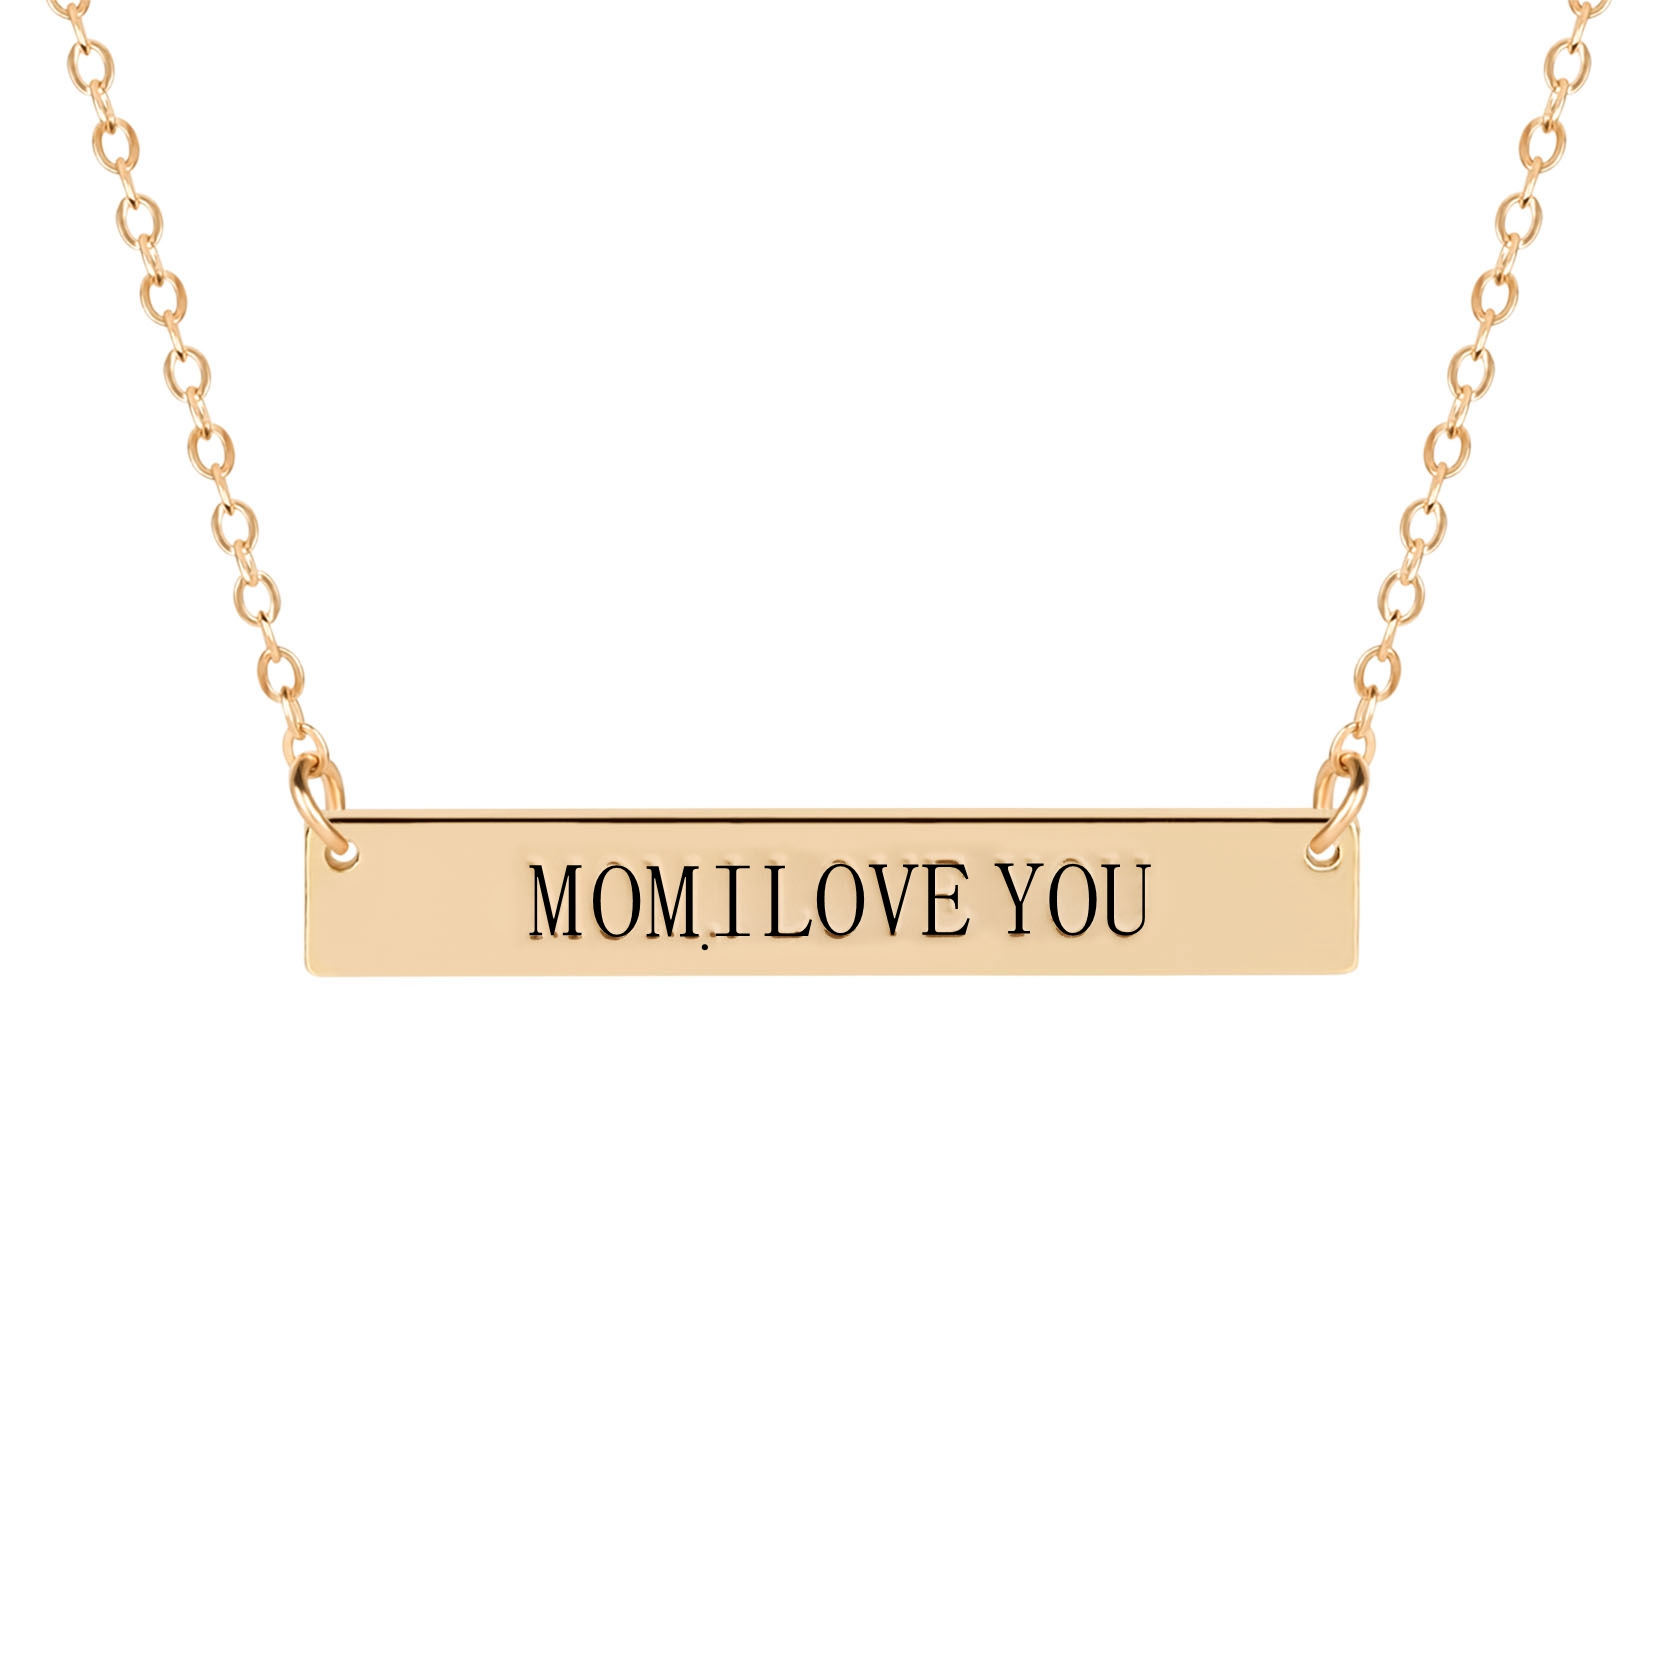 Mom, I Love You ,  Mother Daughter Jewelry Square Bar Clavicle Necklace Pendant Long Chain Necklaces Mother's Day Gift